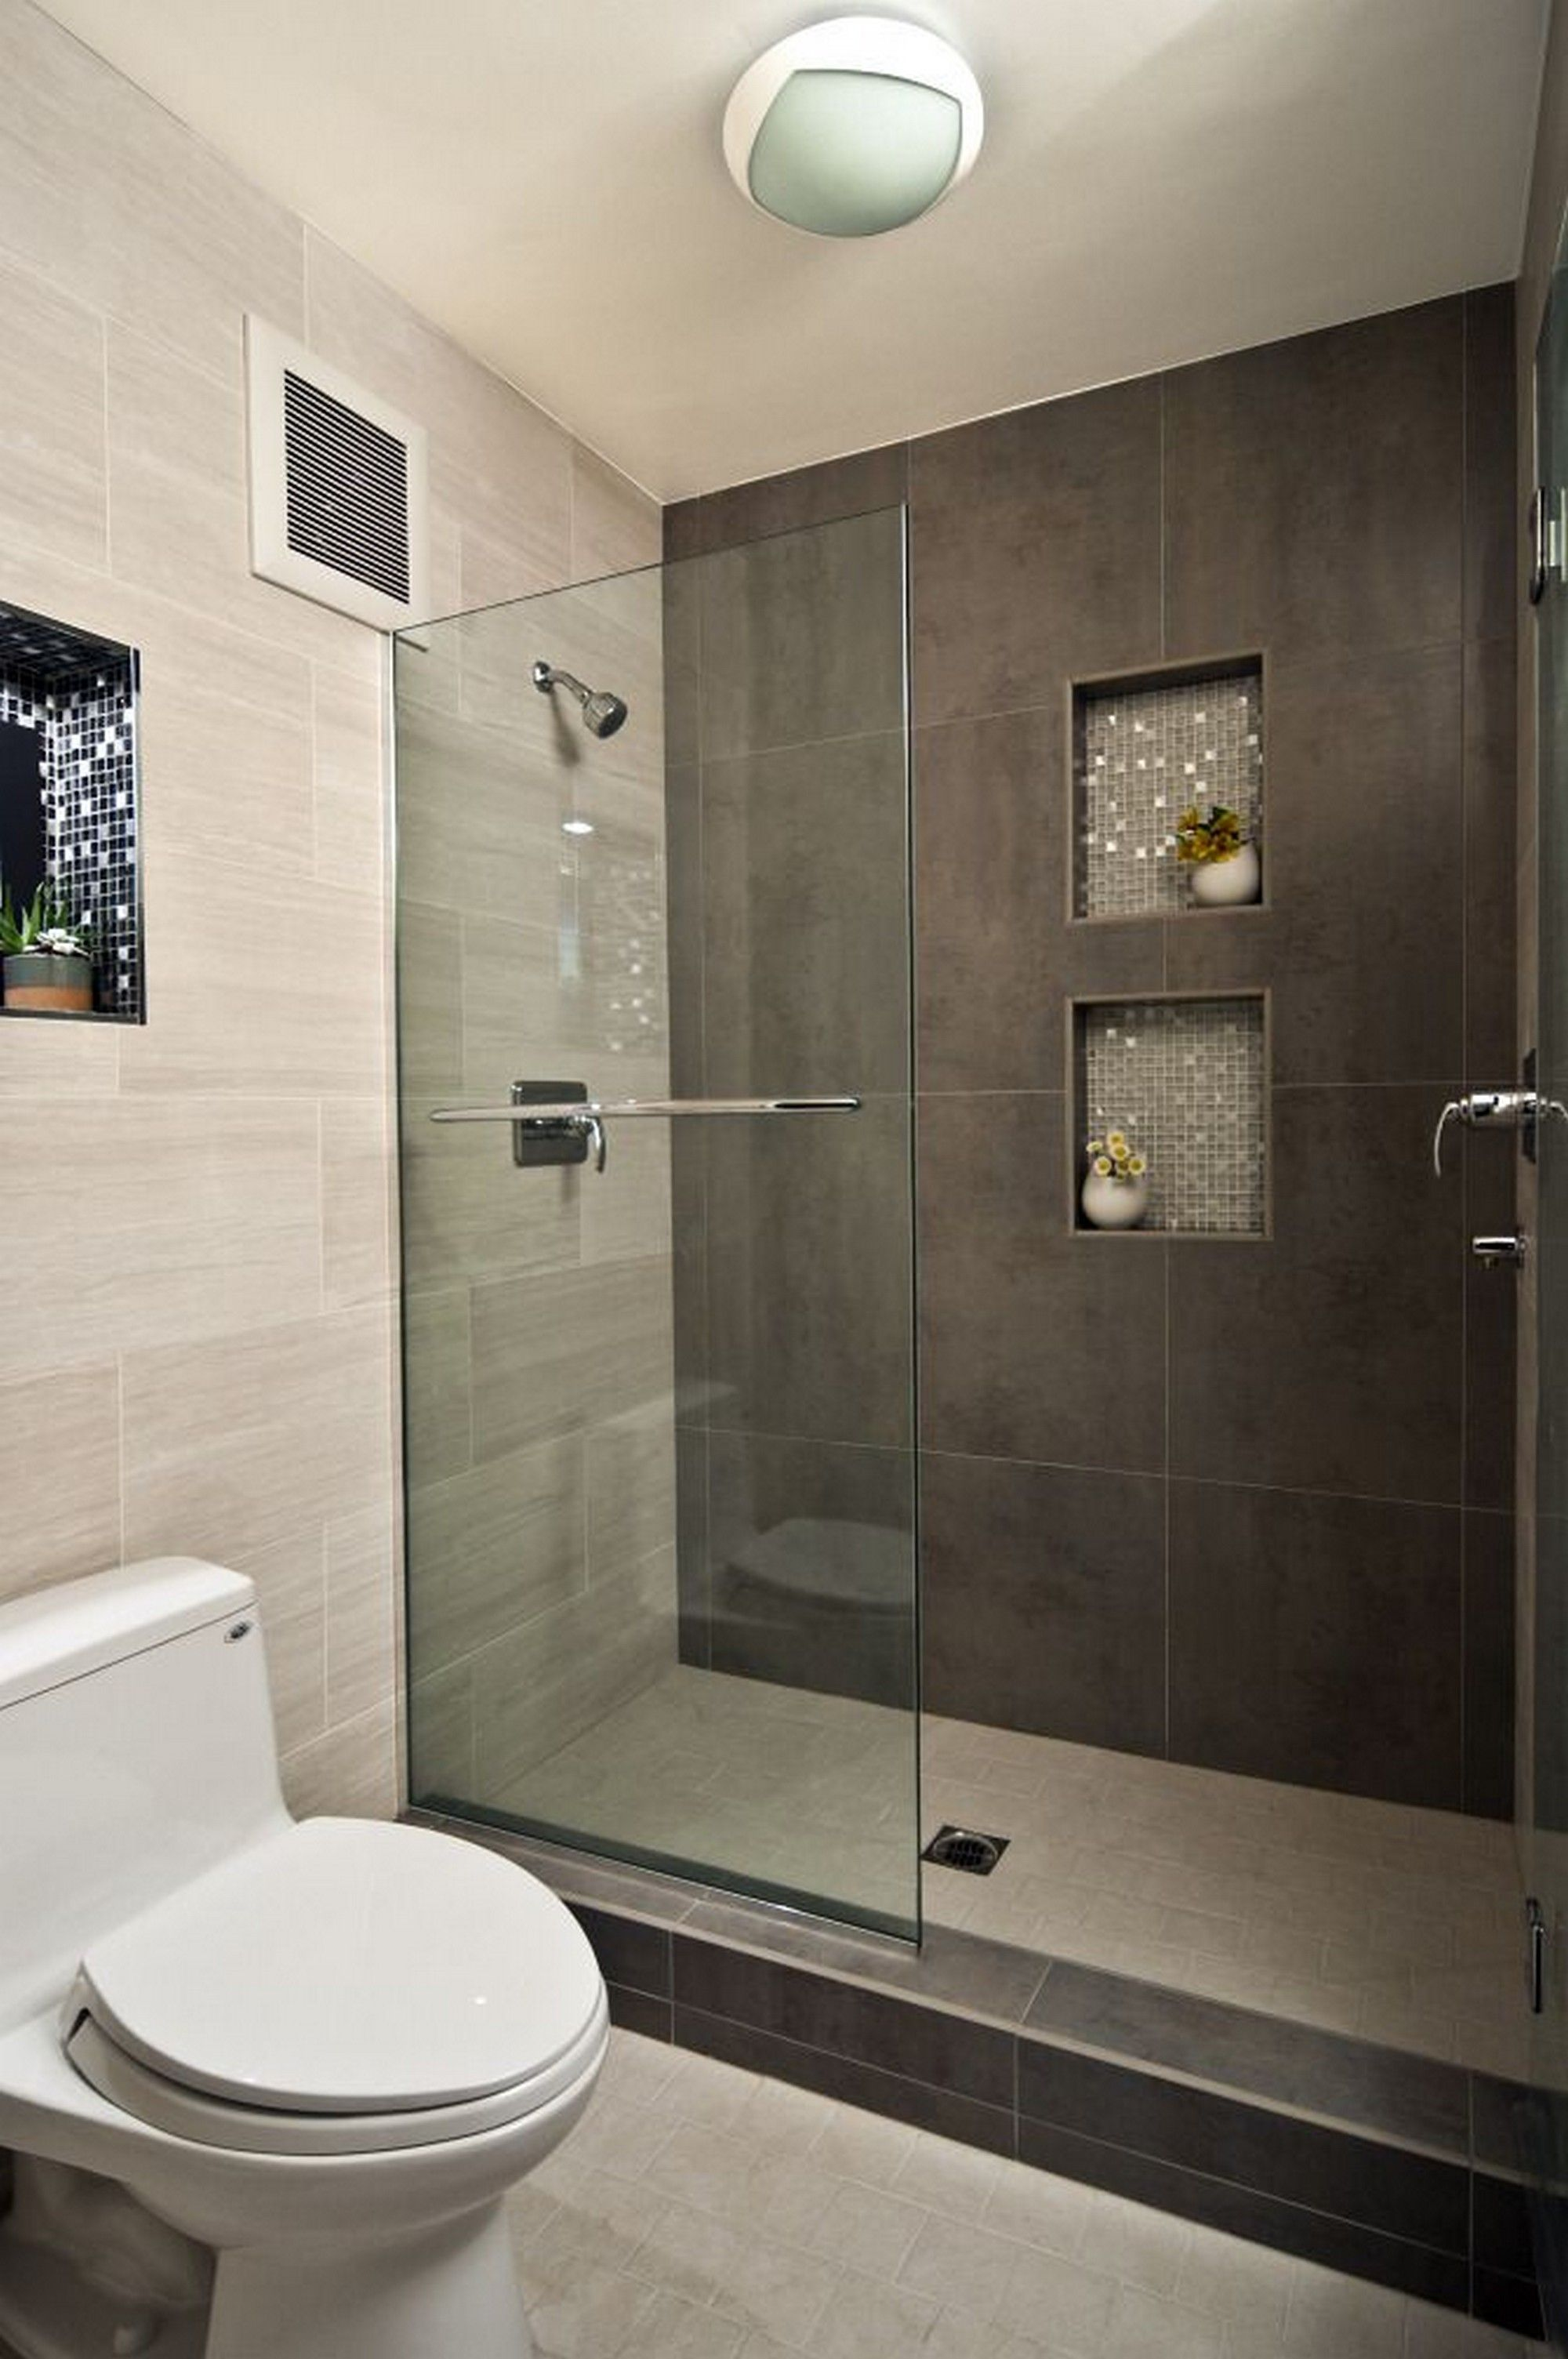 Modern bathroom design ideas with walk in shower small for Bathroom designs and decor